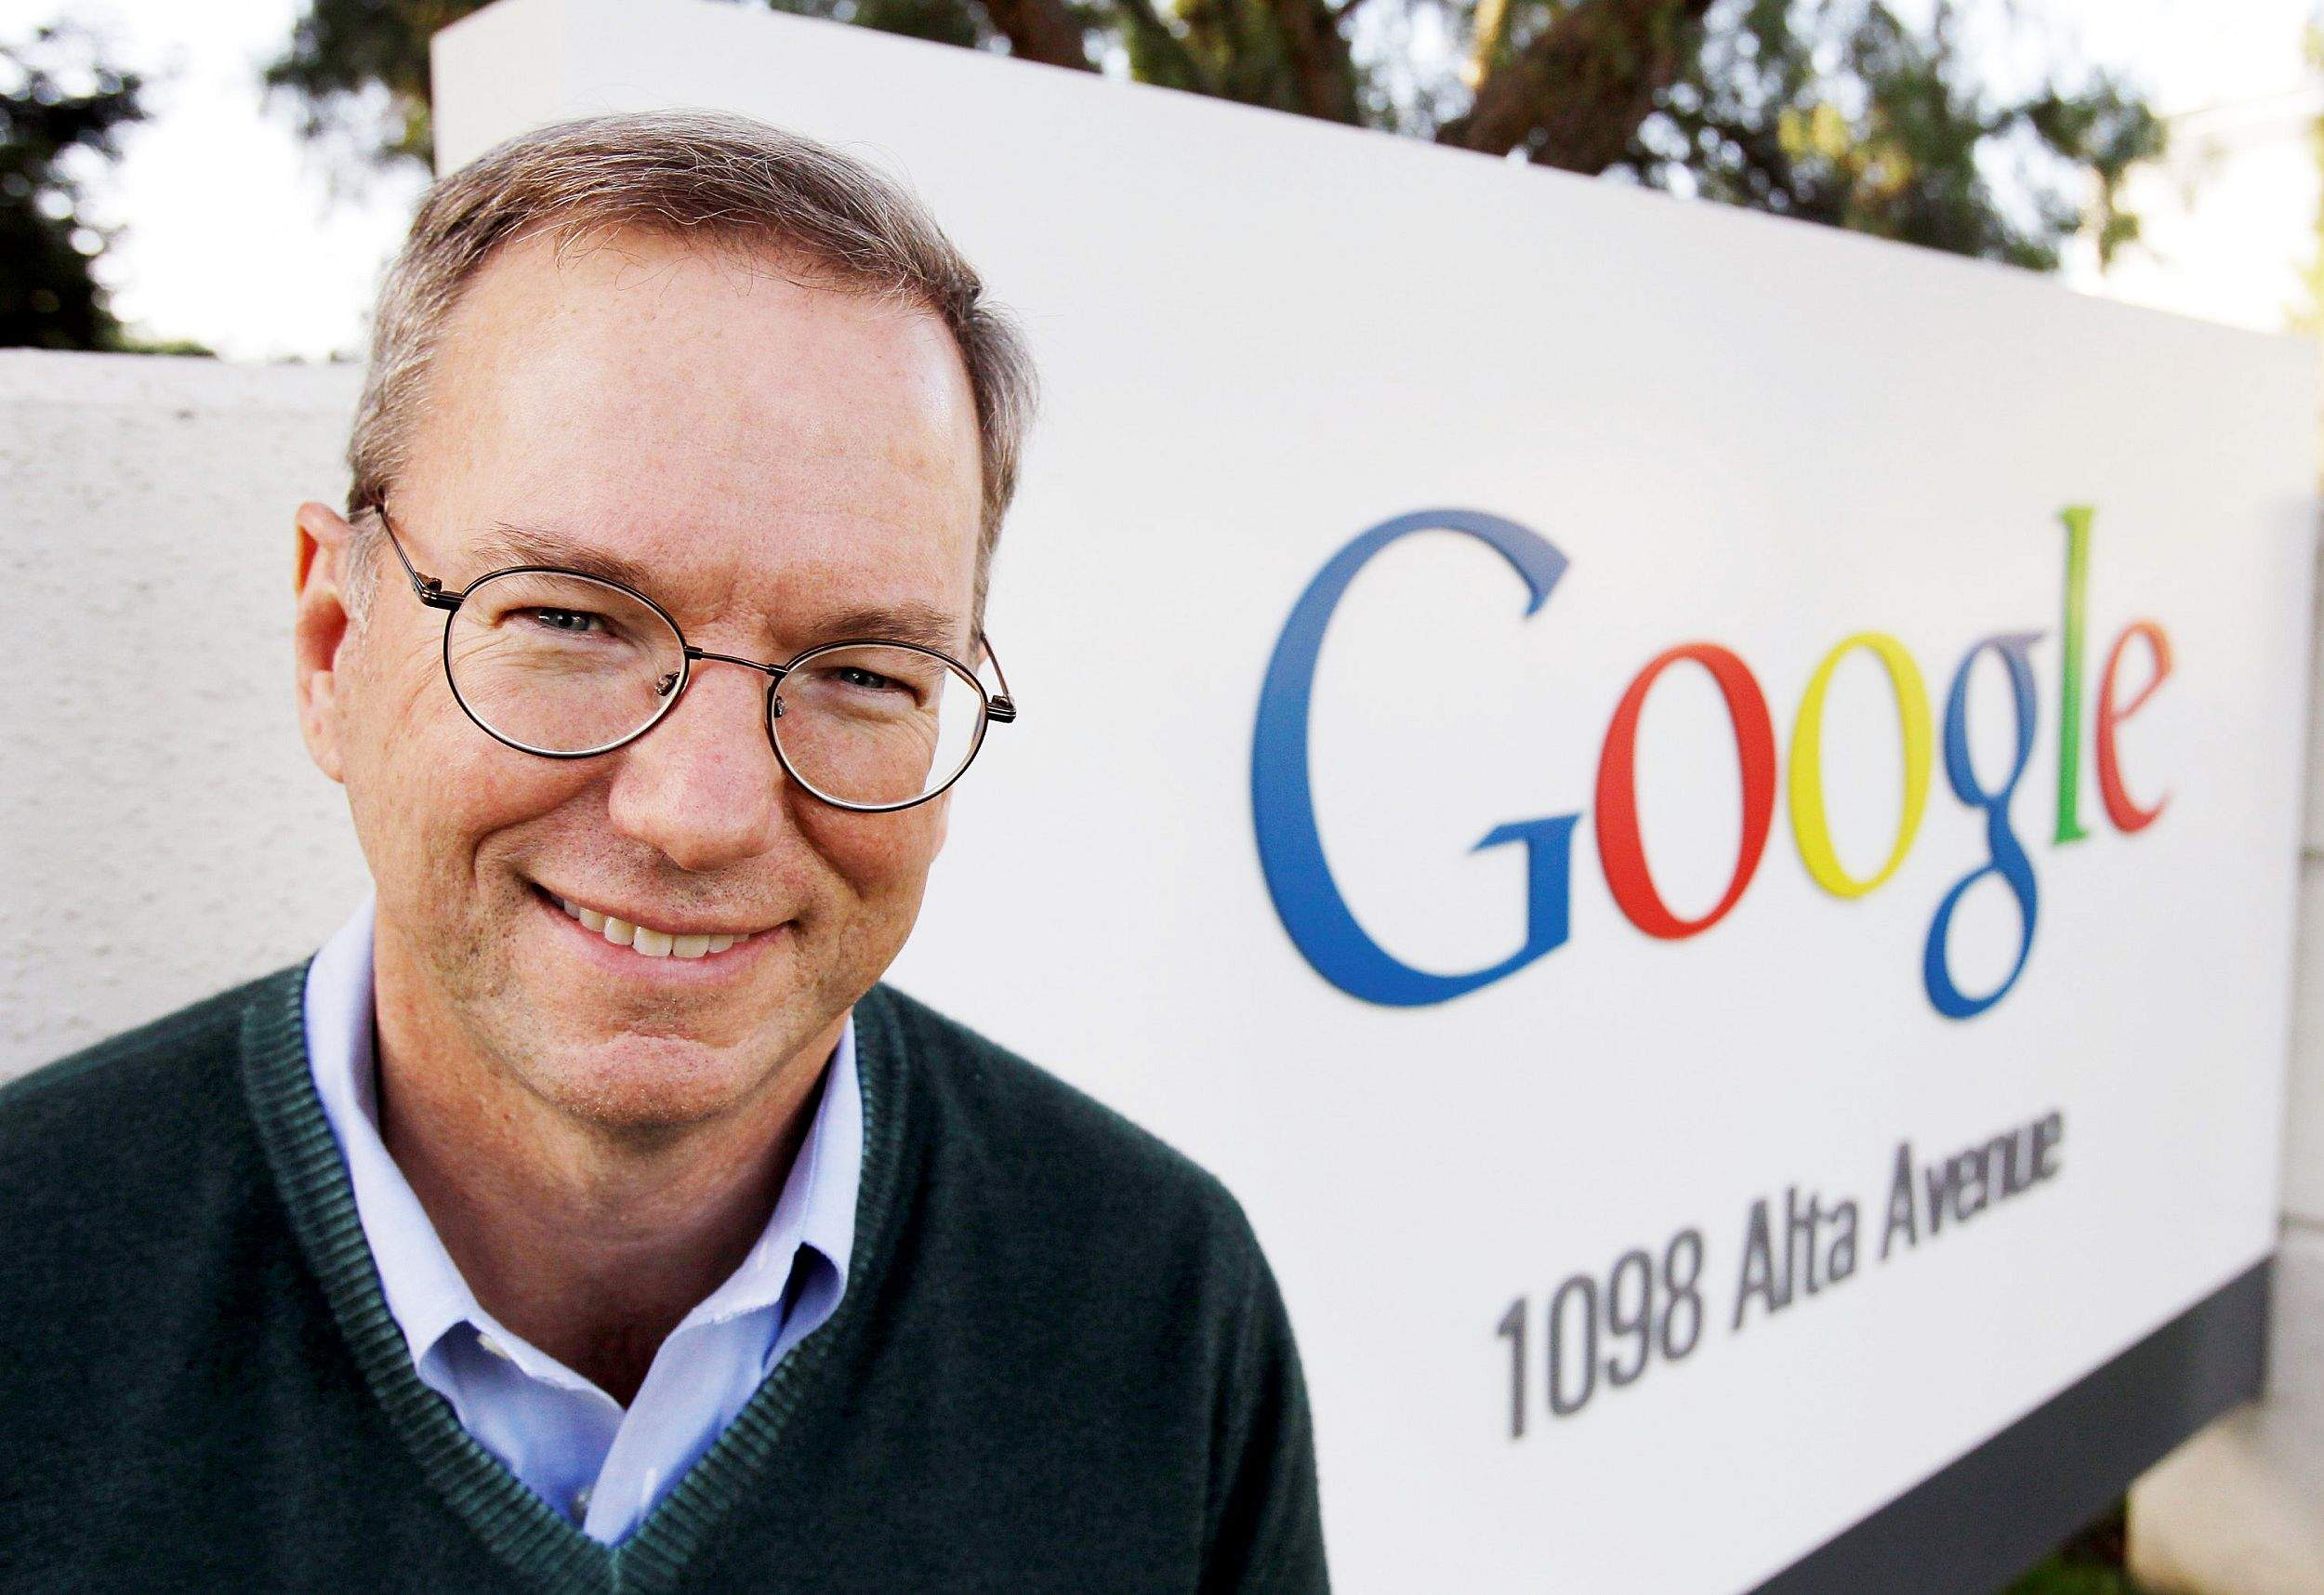 eric schmidt leadership style Sales leadership thought style & design eric schmidt stepped down in jan 2018 as executive chairman of google's parent company.